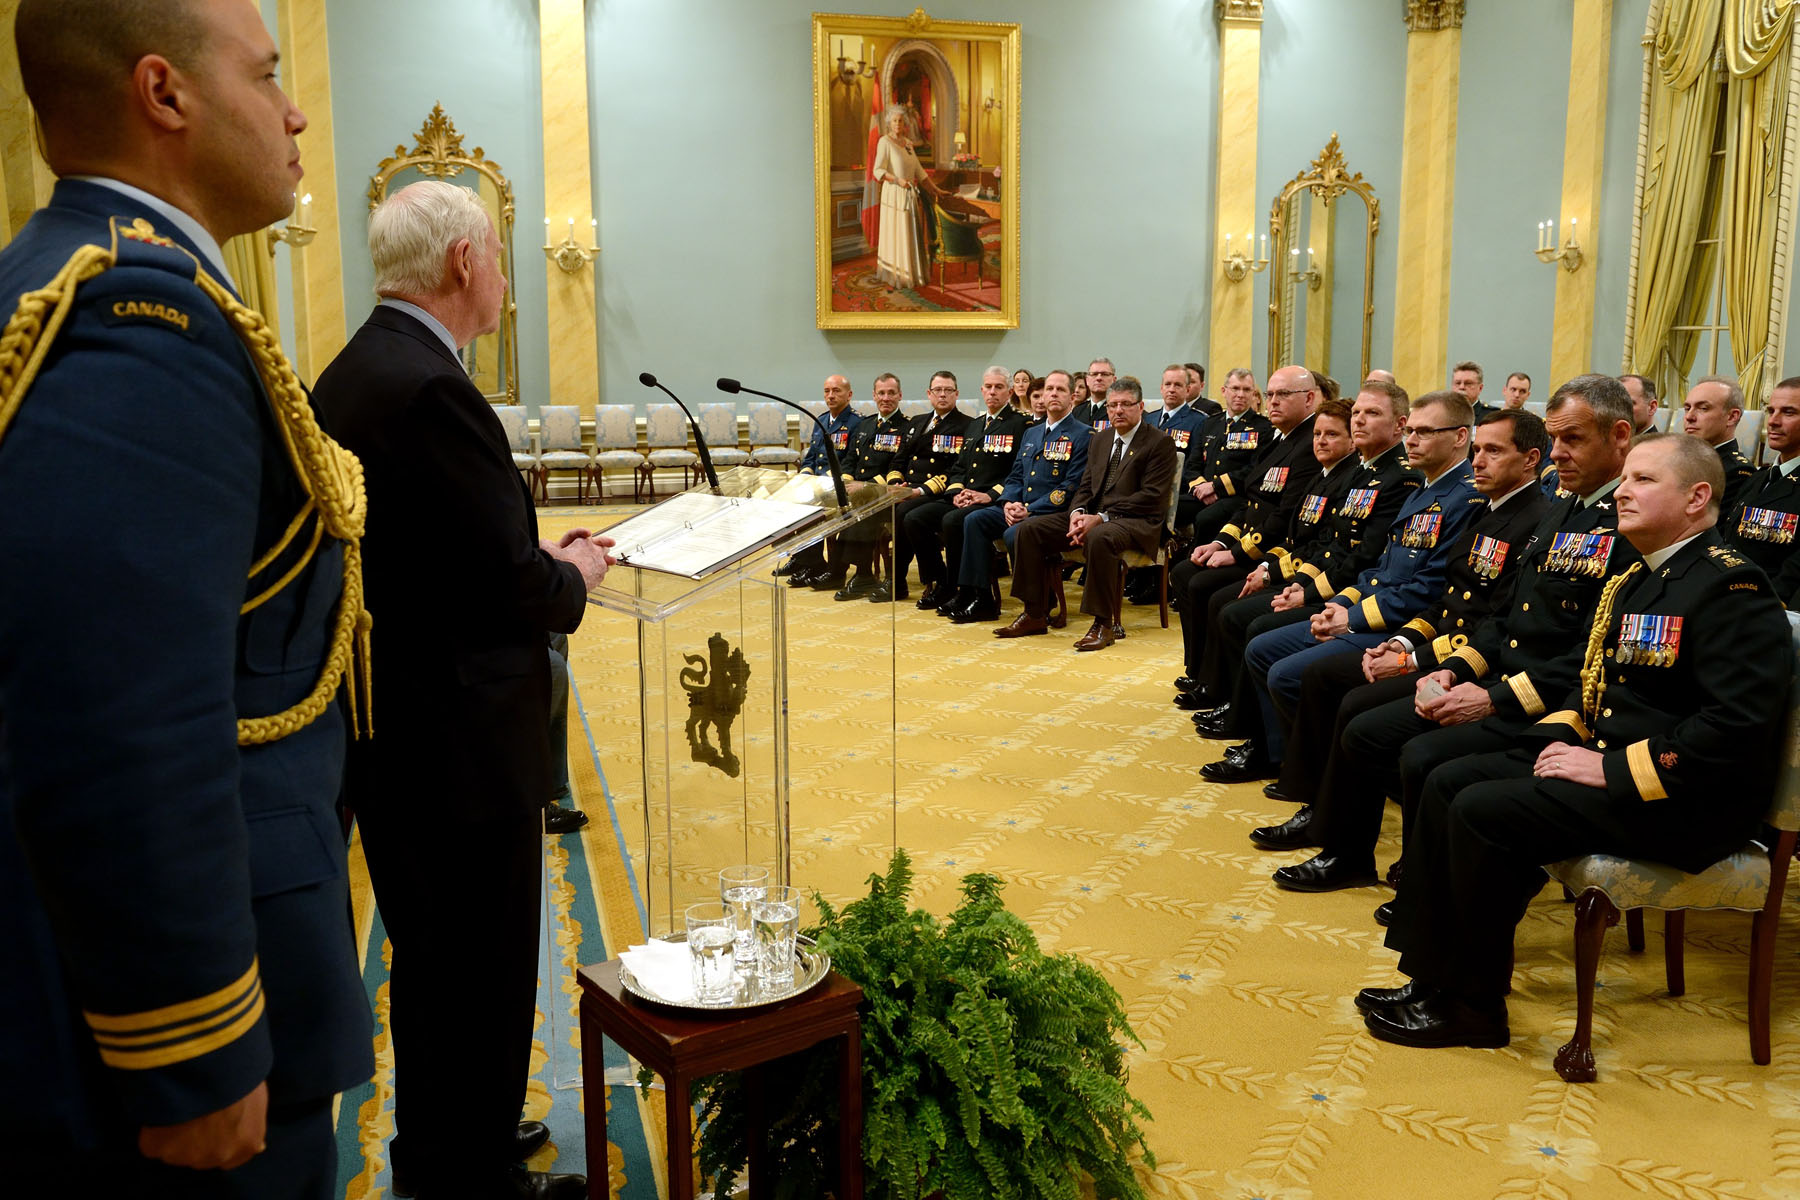 The Governor General and Commander-in-Chief of Canada recognized the promotion of Canadian Armed Forces members during a Presentation of Scrolls Ceremony held at Rideau Hall.